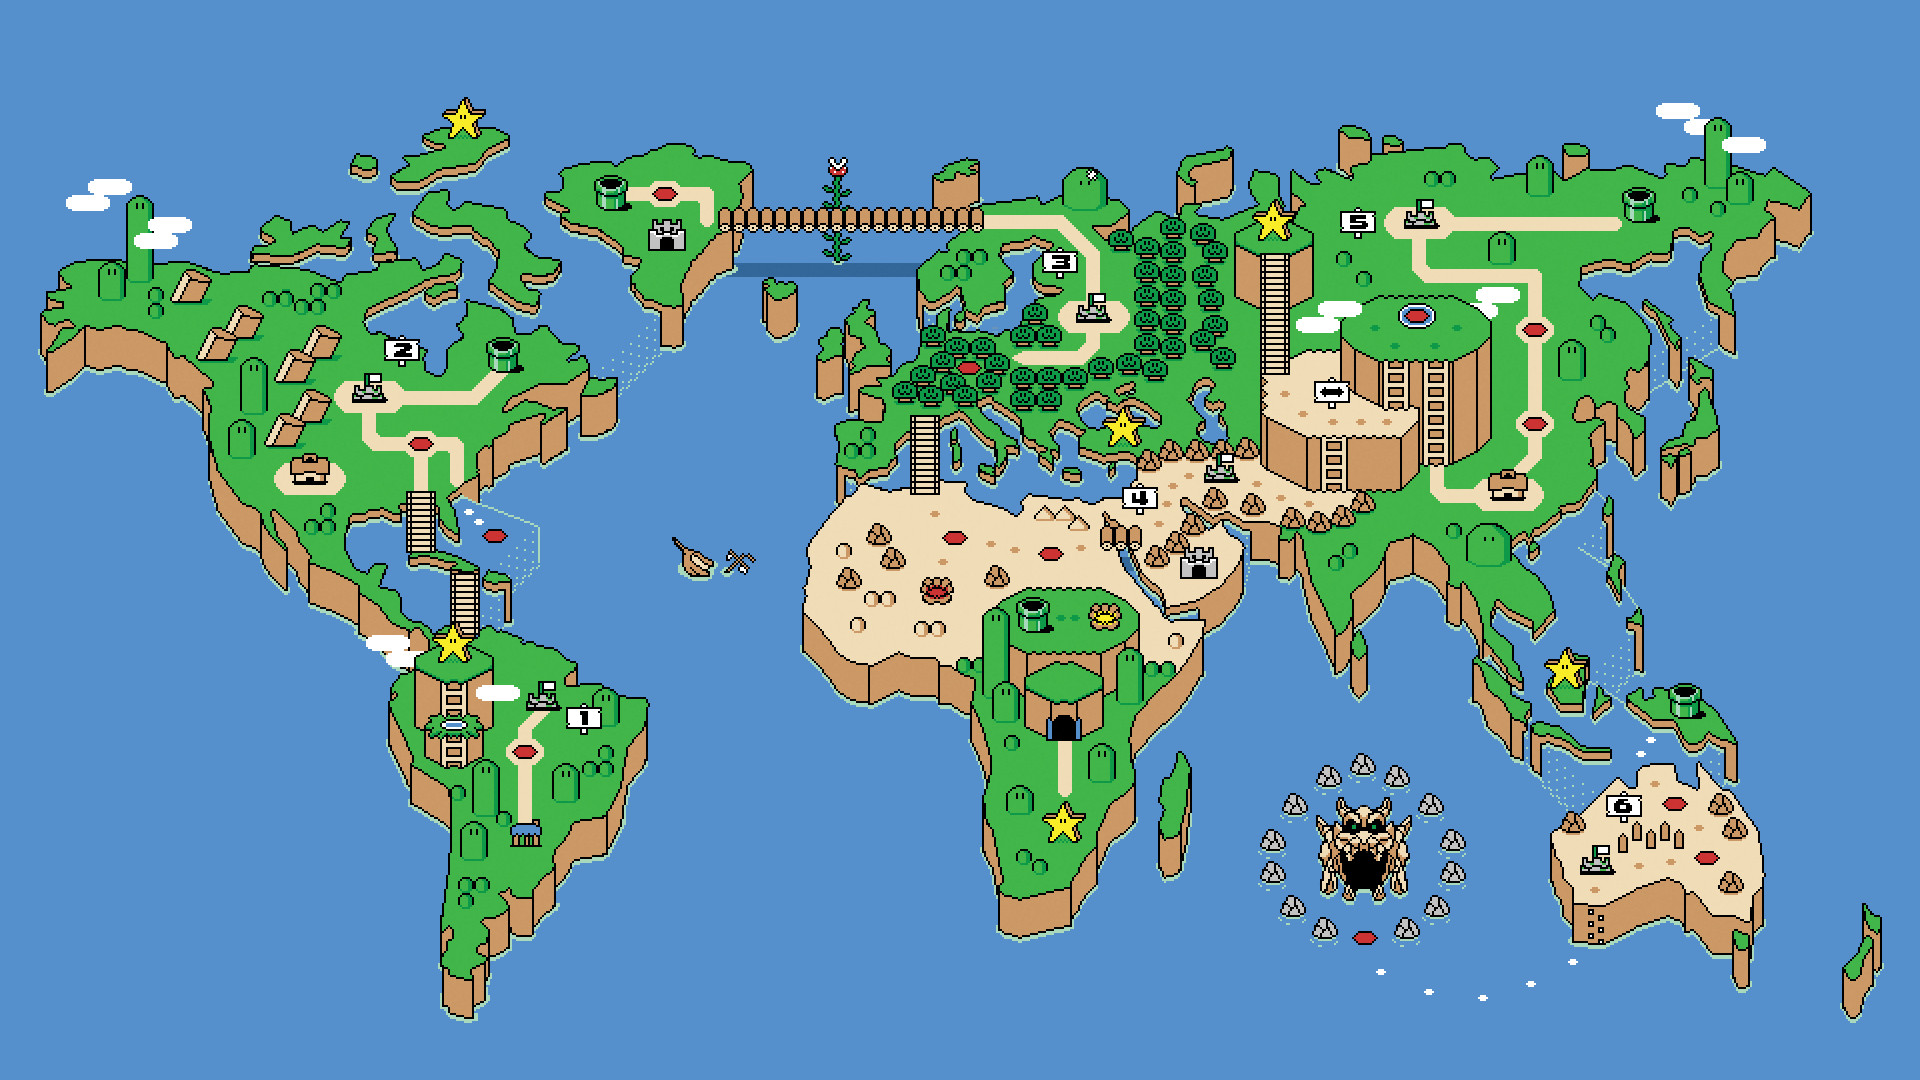 Super mario world map wallpaper 56 images 1920x1080 23 super mario world wallpapers super mario world backgrounds gumiabroncs Images